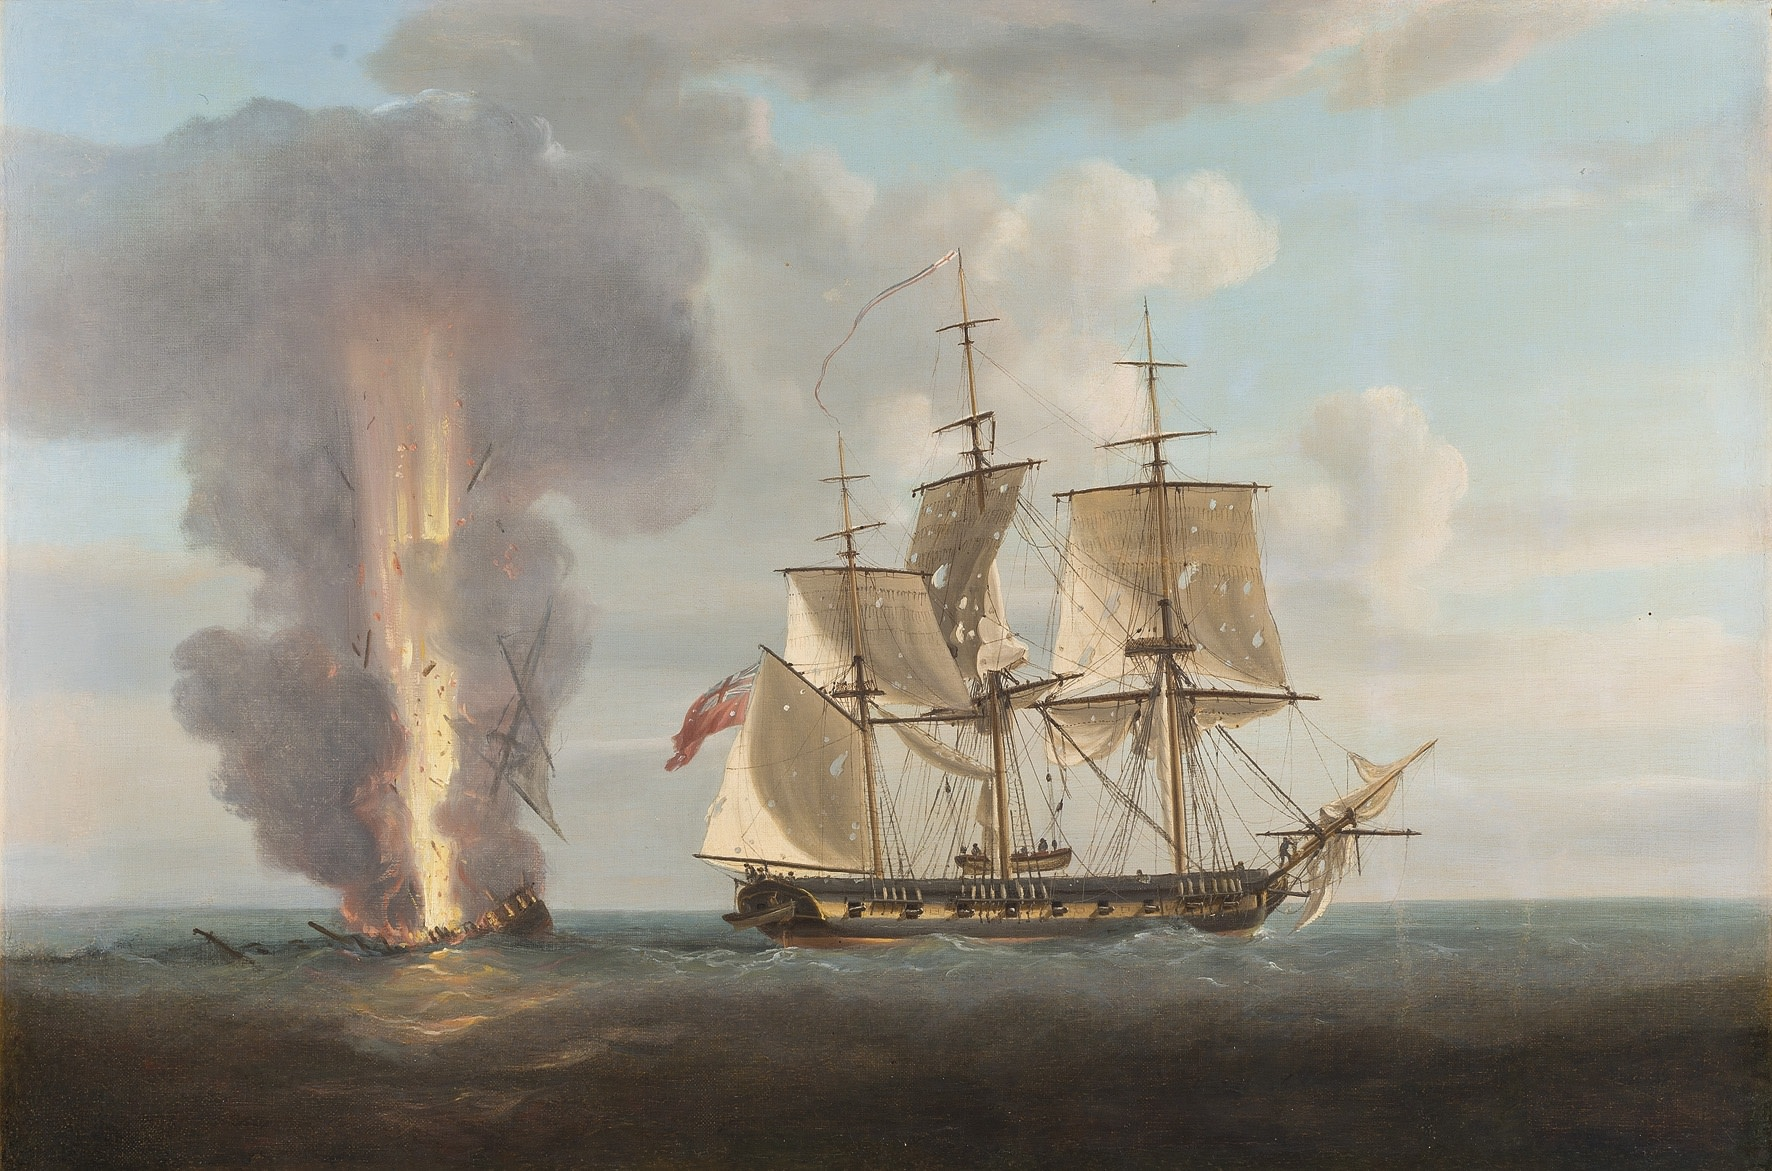 Nicholas Pocock, Captain Jeremiah Coghlan's ship the 'Renard' engaging the French privateer the 'General Ernouf' off Haiti, 1805; The destruction of the 'General Ernouf' by the 'Renard'